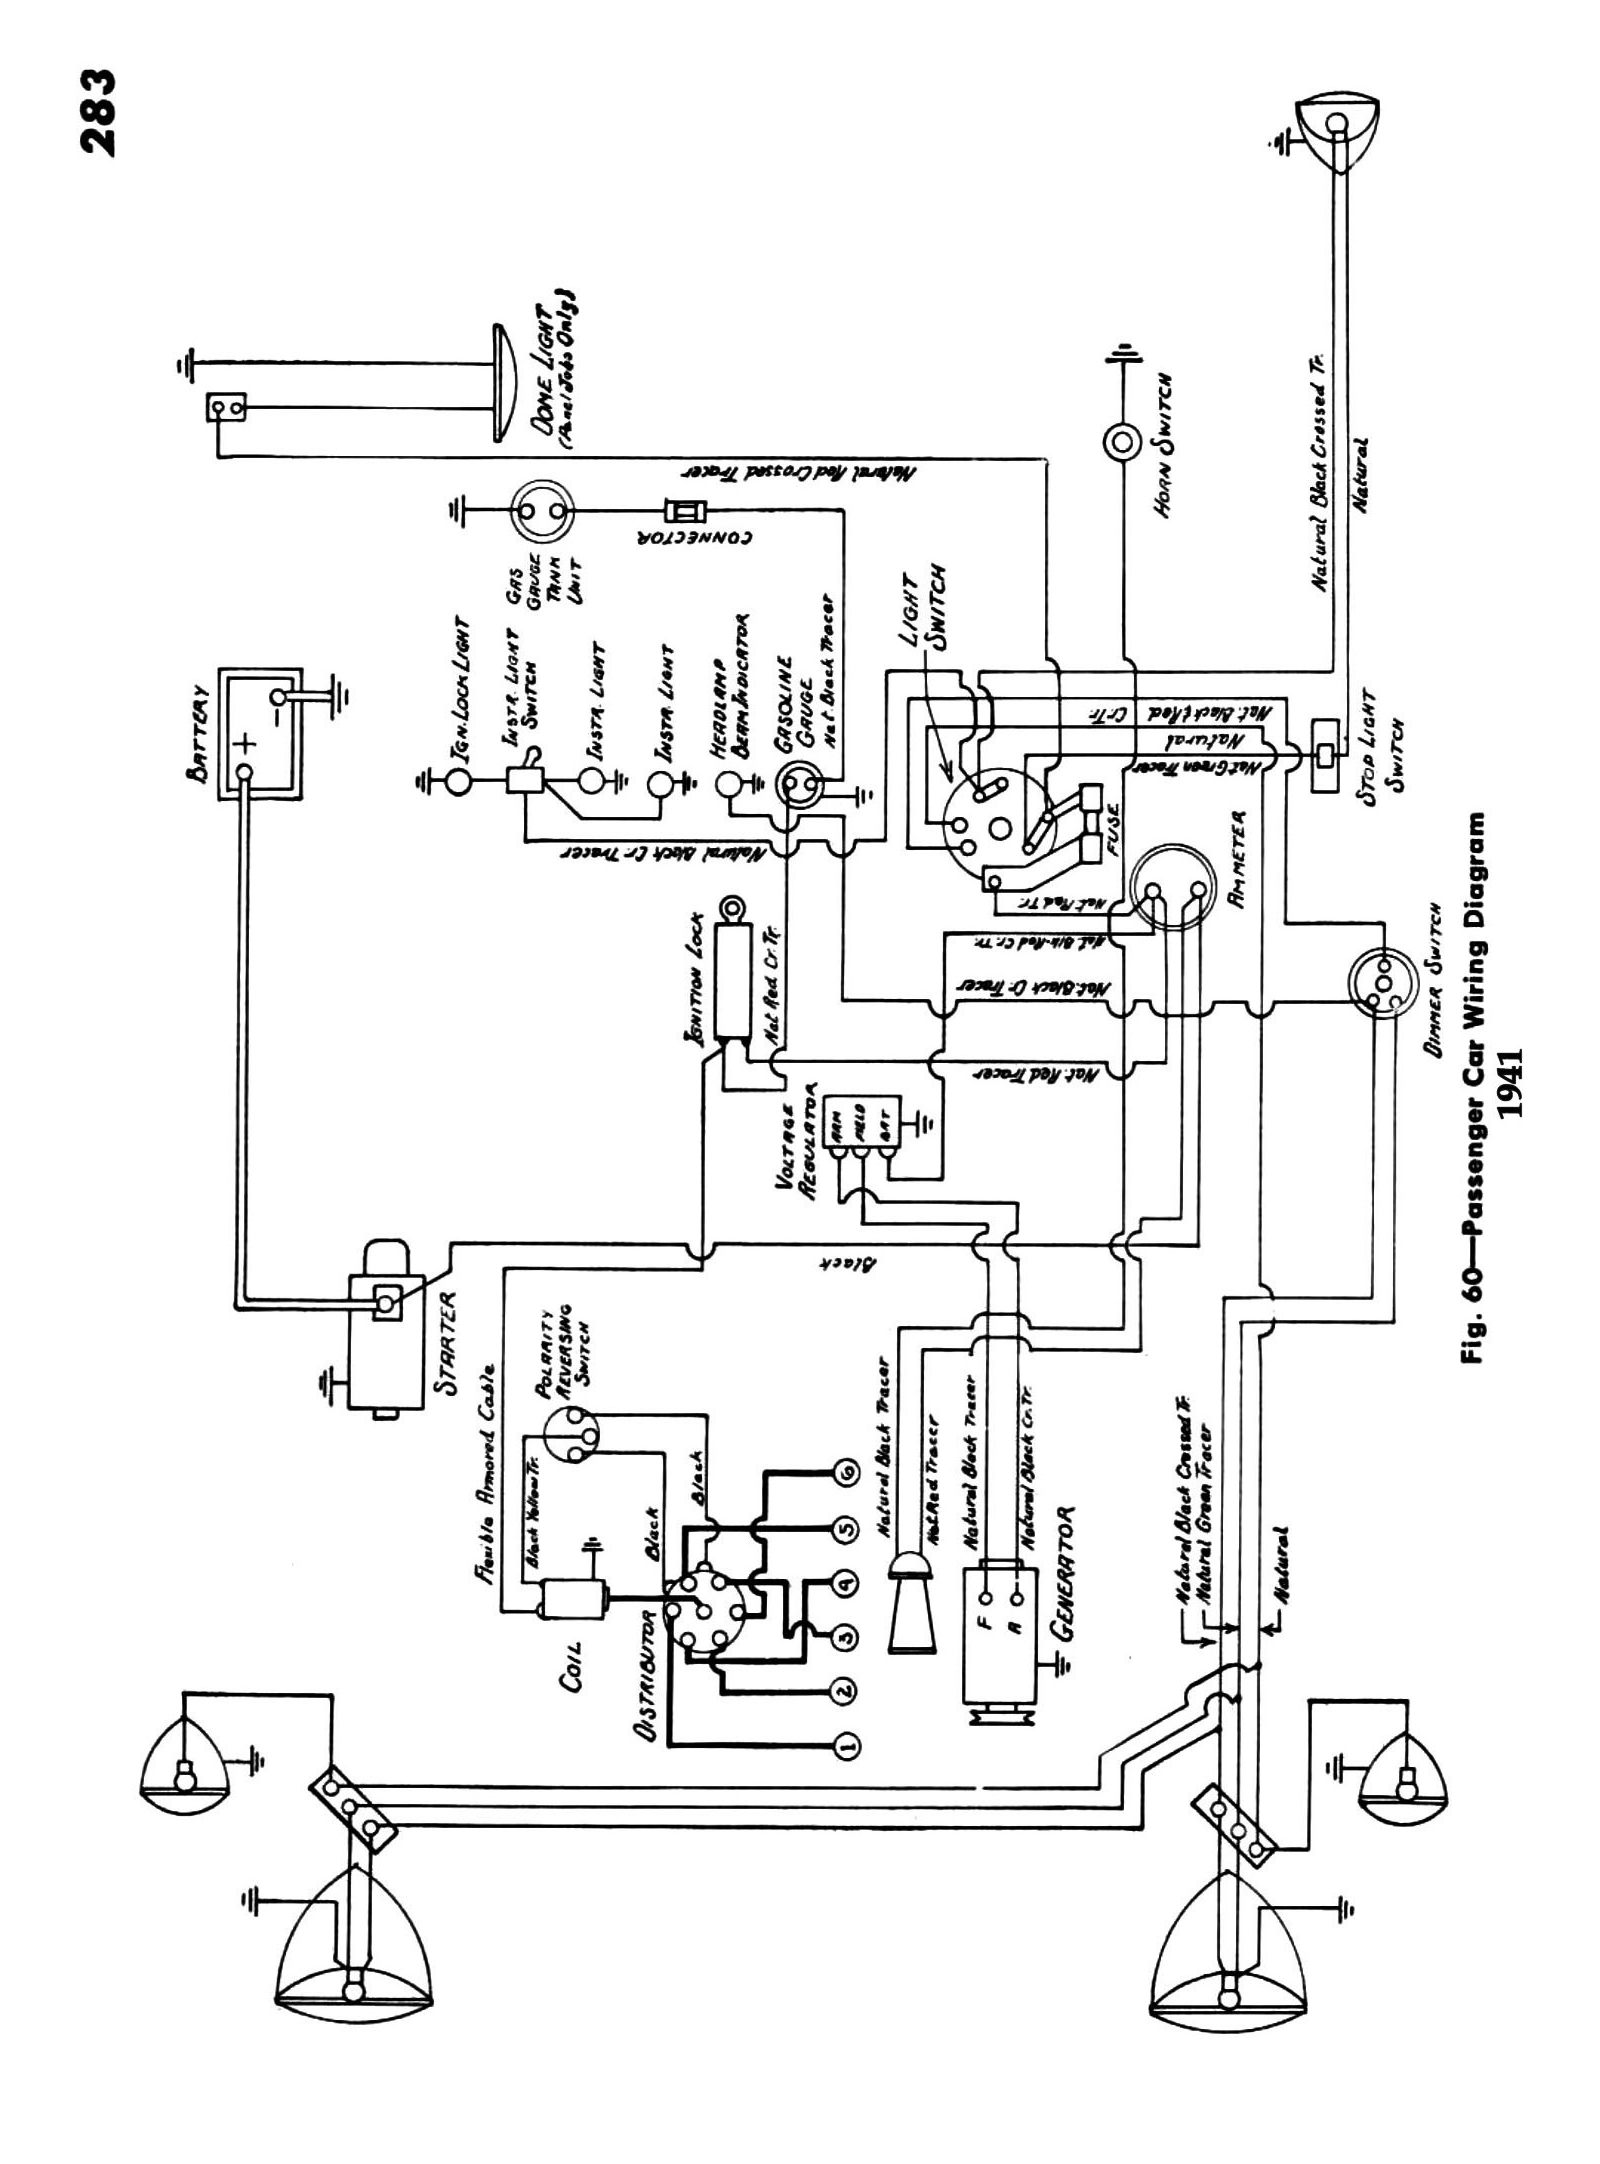 Plymouth Ac Wiring Diagram Opinions About Wiring Diagram \u2022 John Deere  210 Wiring-Diagram John Deere Positive Ground Wiring Diagram